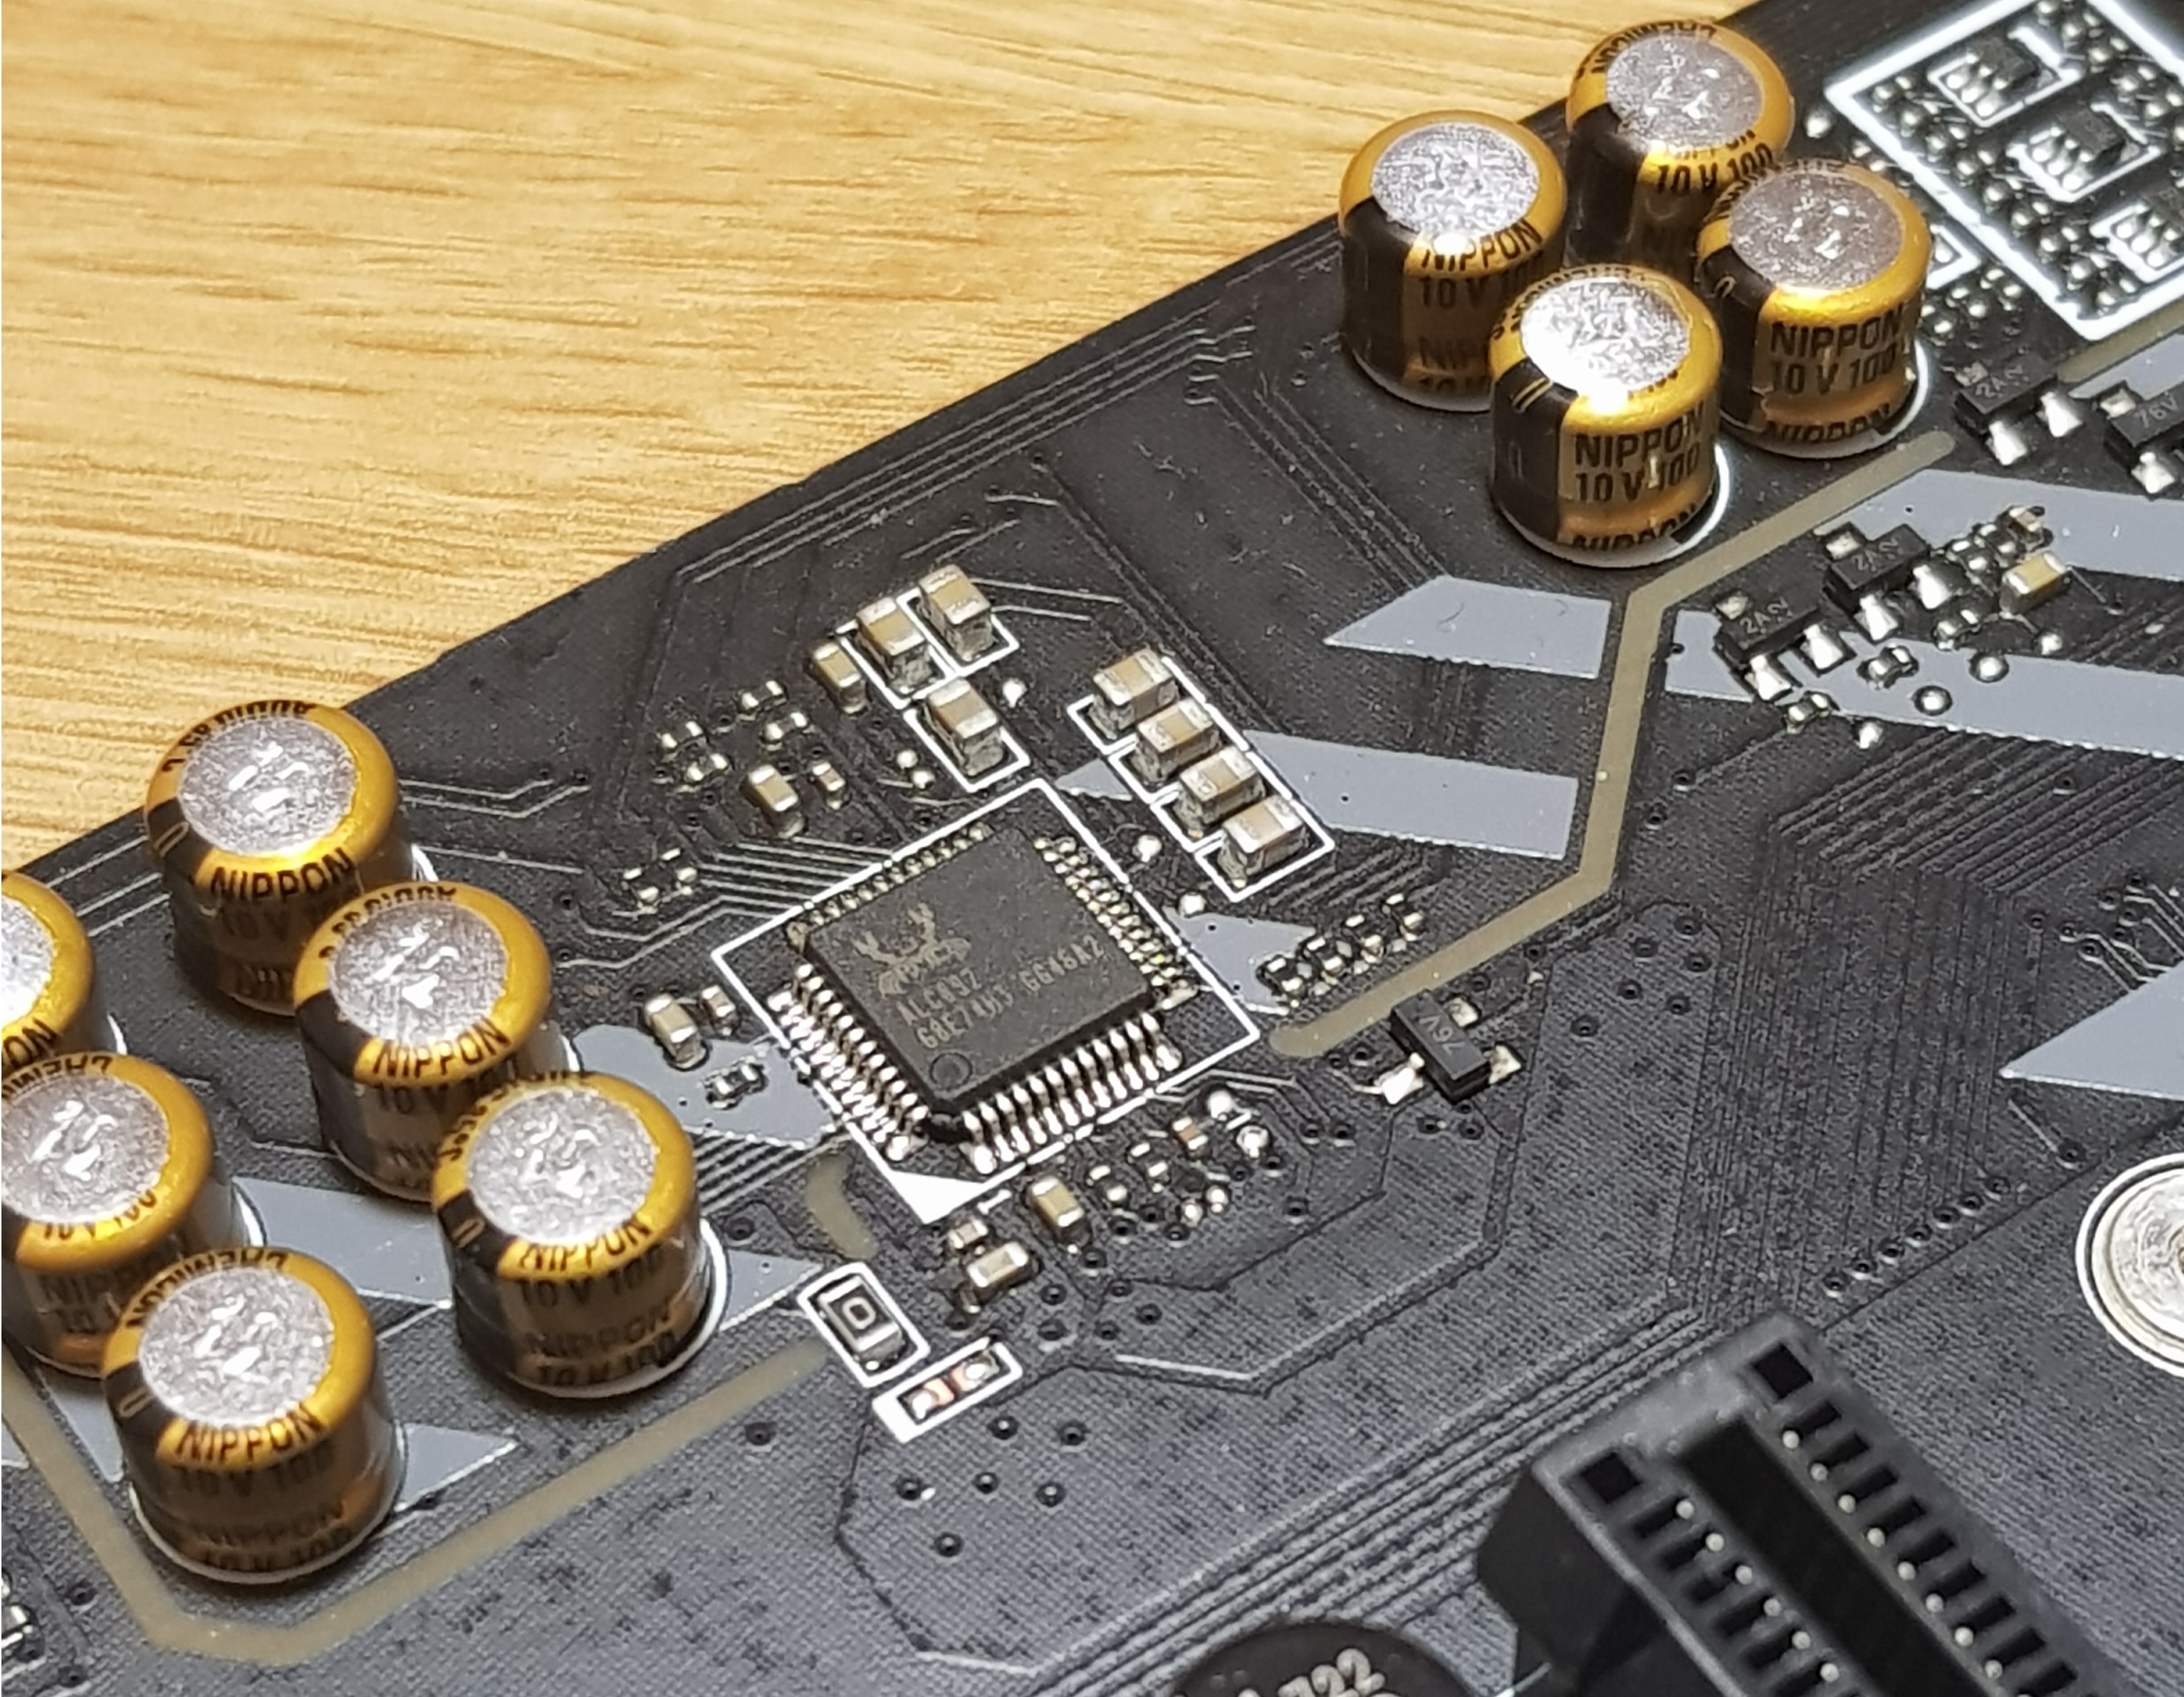 Board Features And Visual Inspection The Msi B350 Tomahawk Circuit There Are A Set Of Nippon Chemi Con Gold Audio Capacitors To Support On